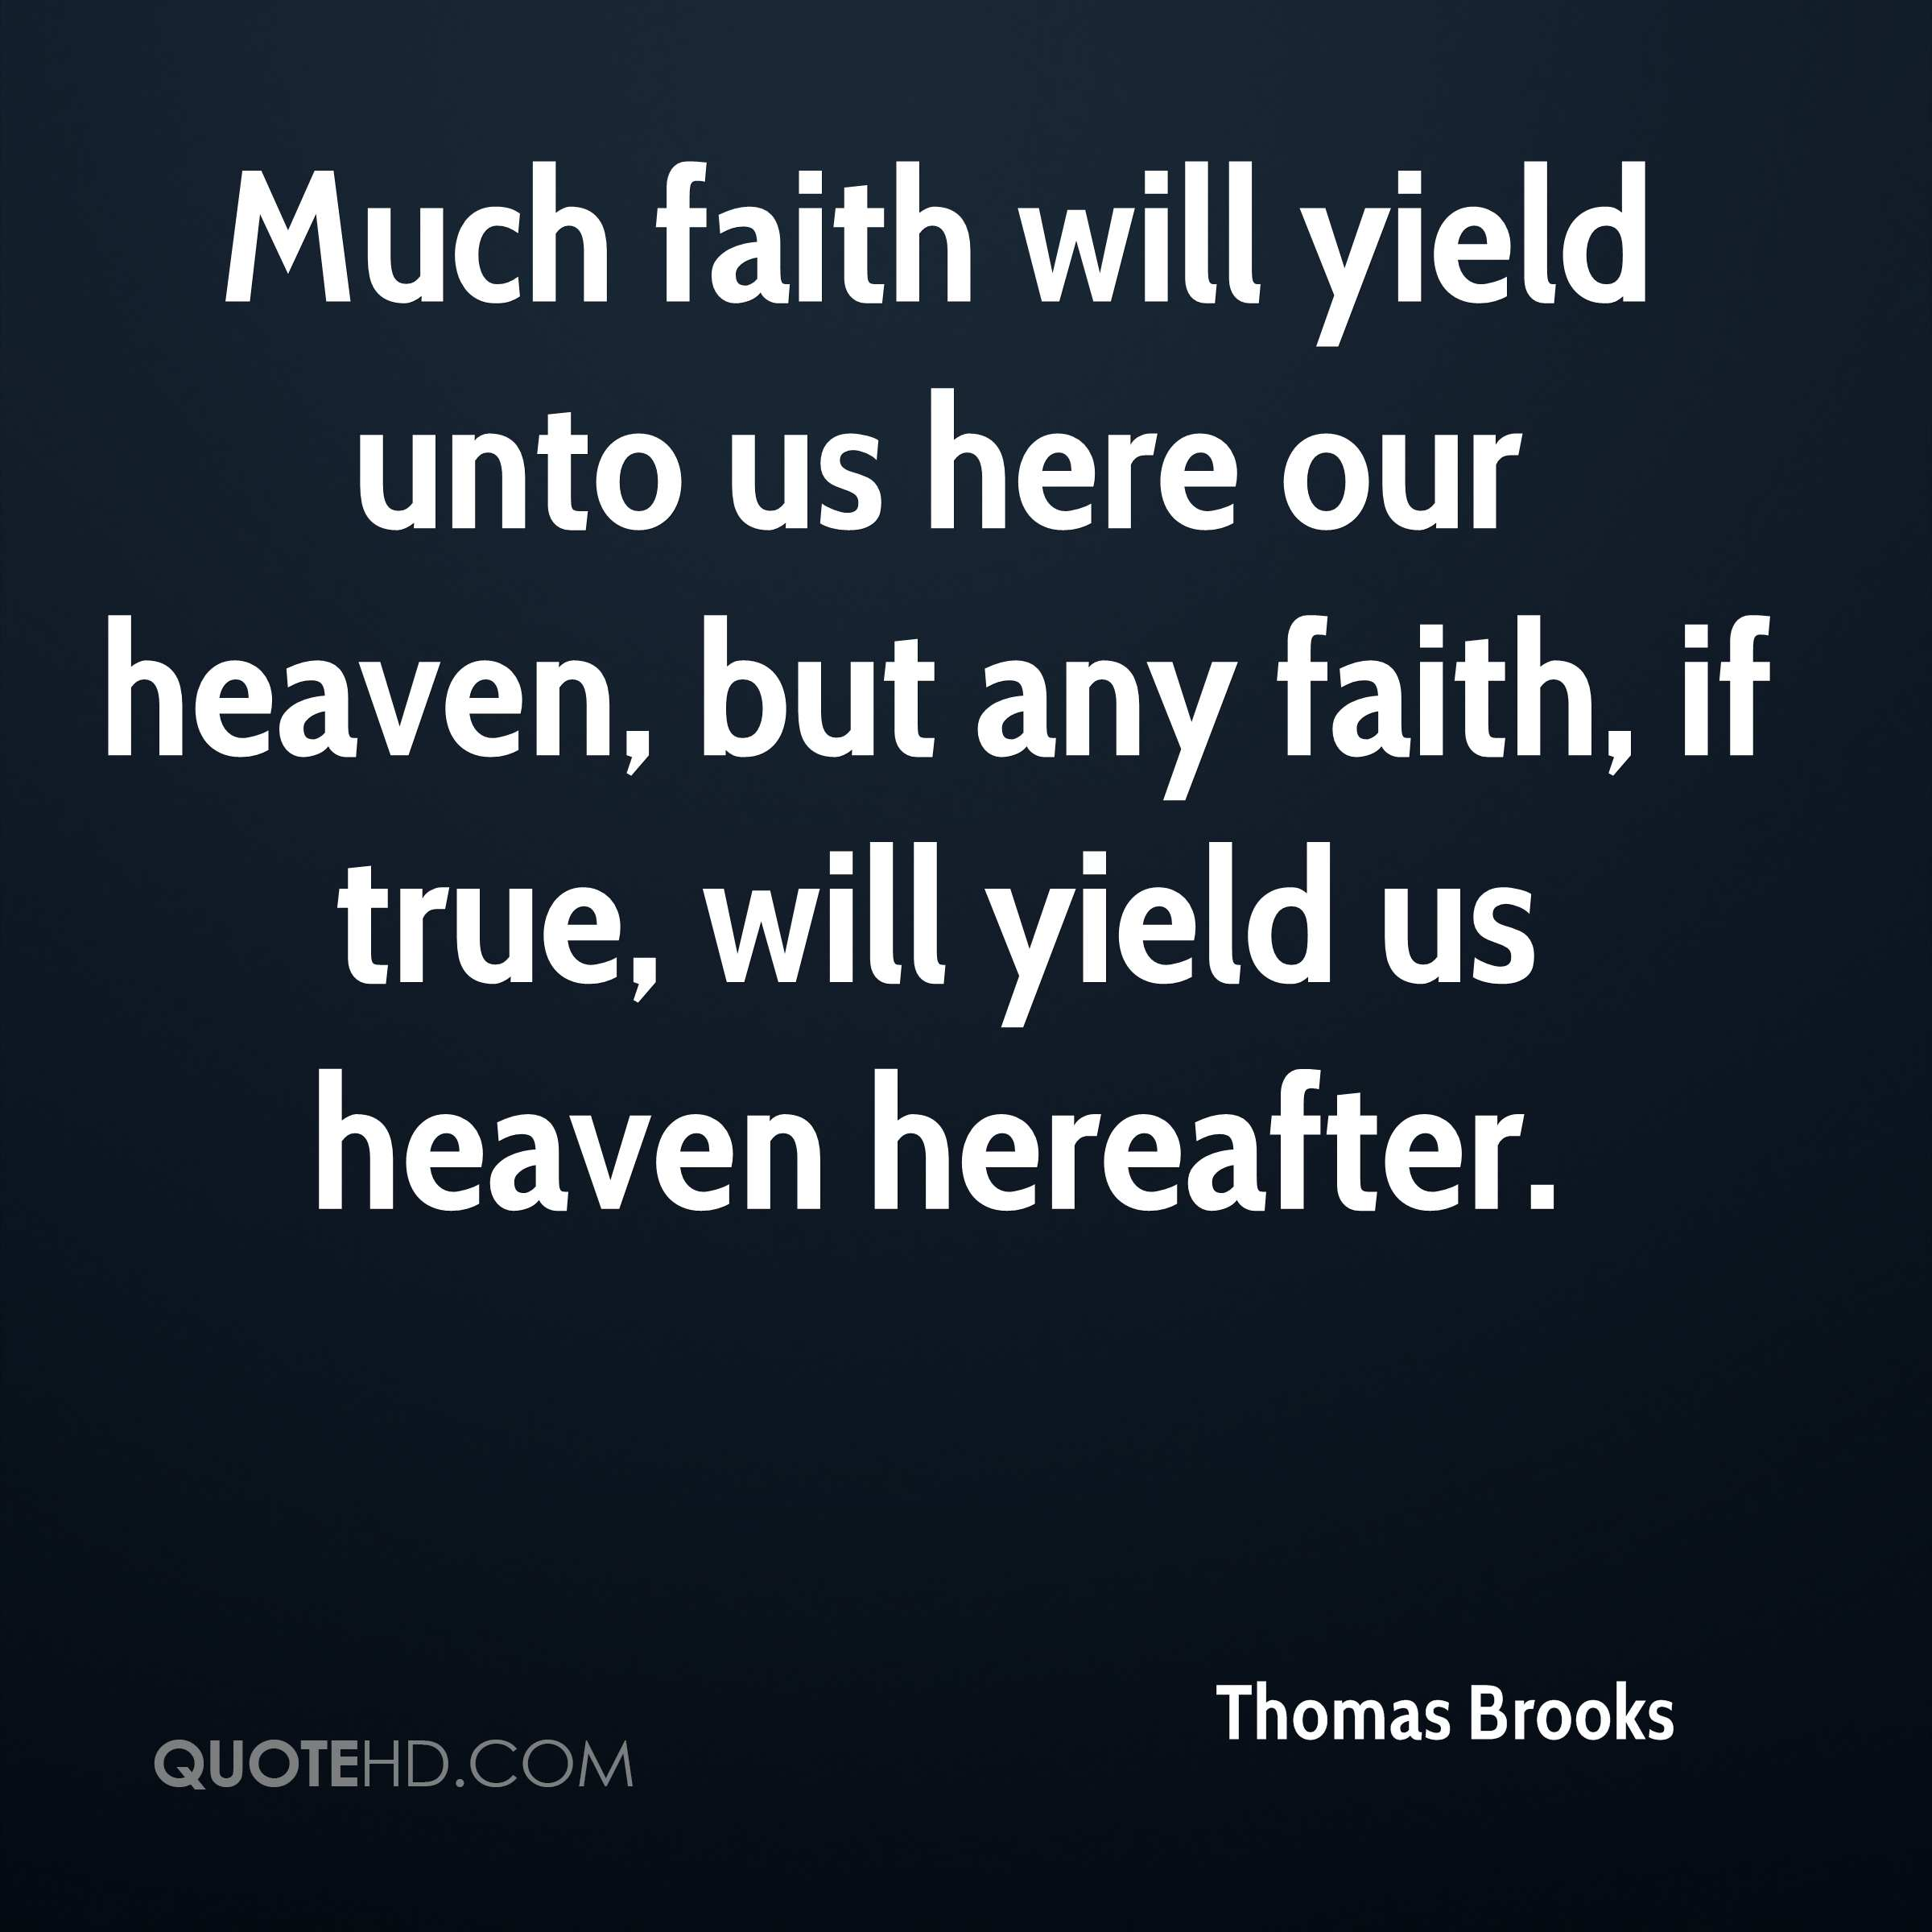 Much faith will yield unto us here our heaven, but any faith, if true, will yield us heaven hereafter.